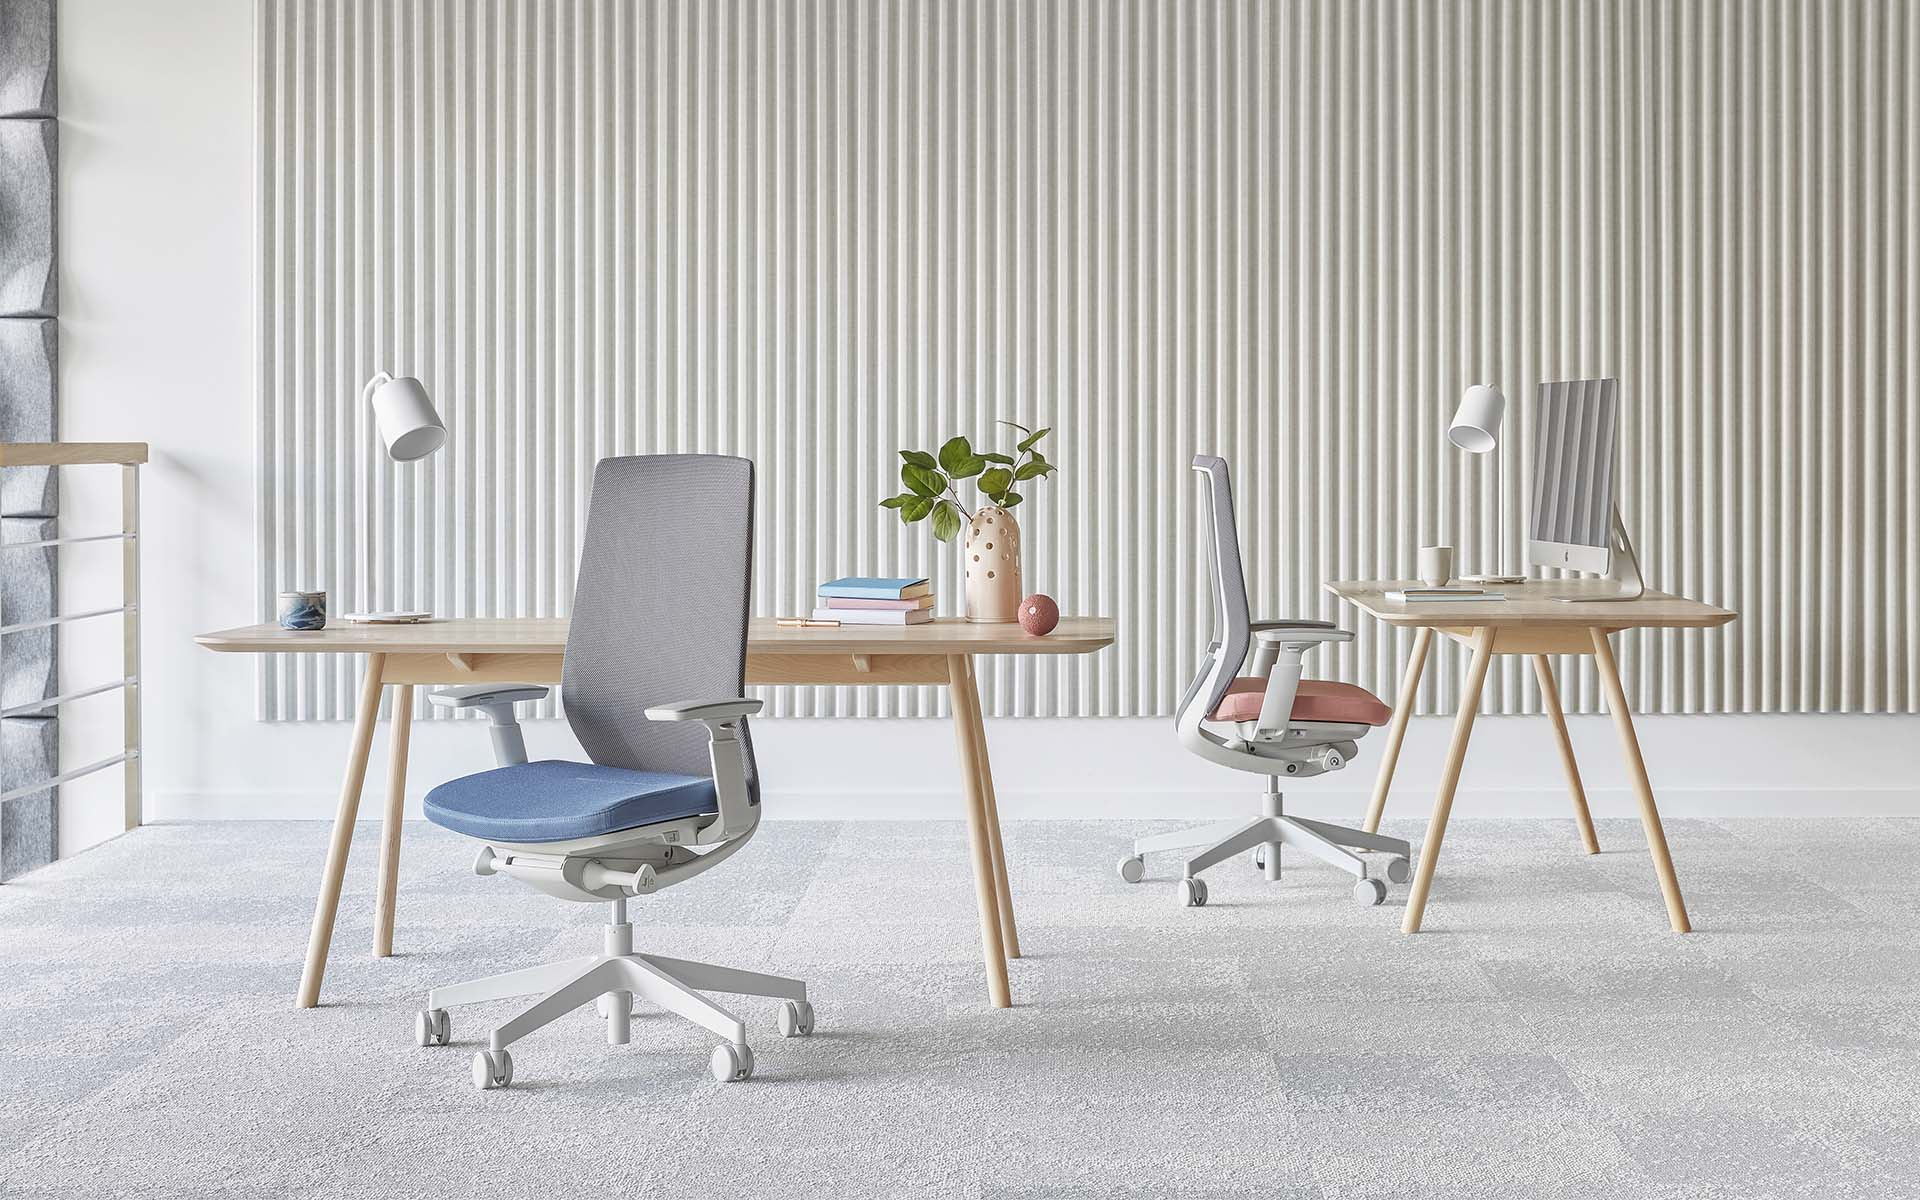 Two Profim Accis Pro office chairs by ITO Design with light blue and pink upholstery in minimalist office